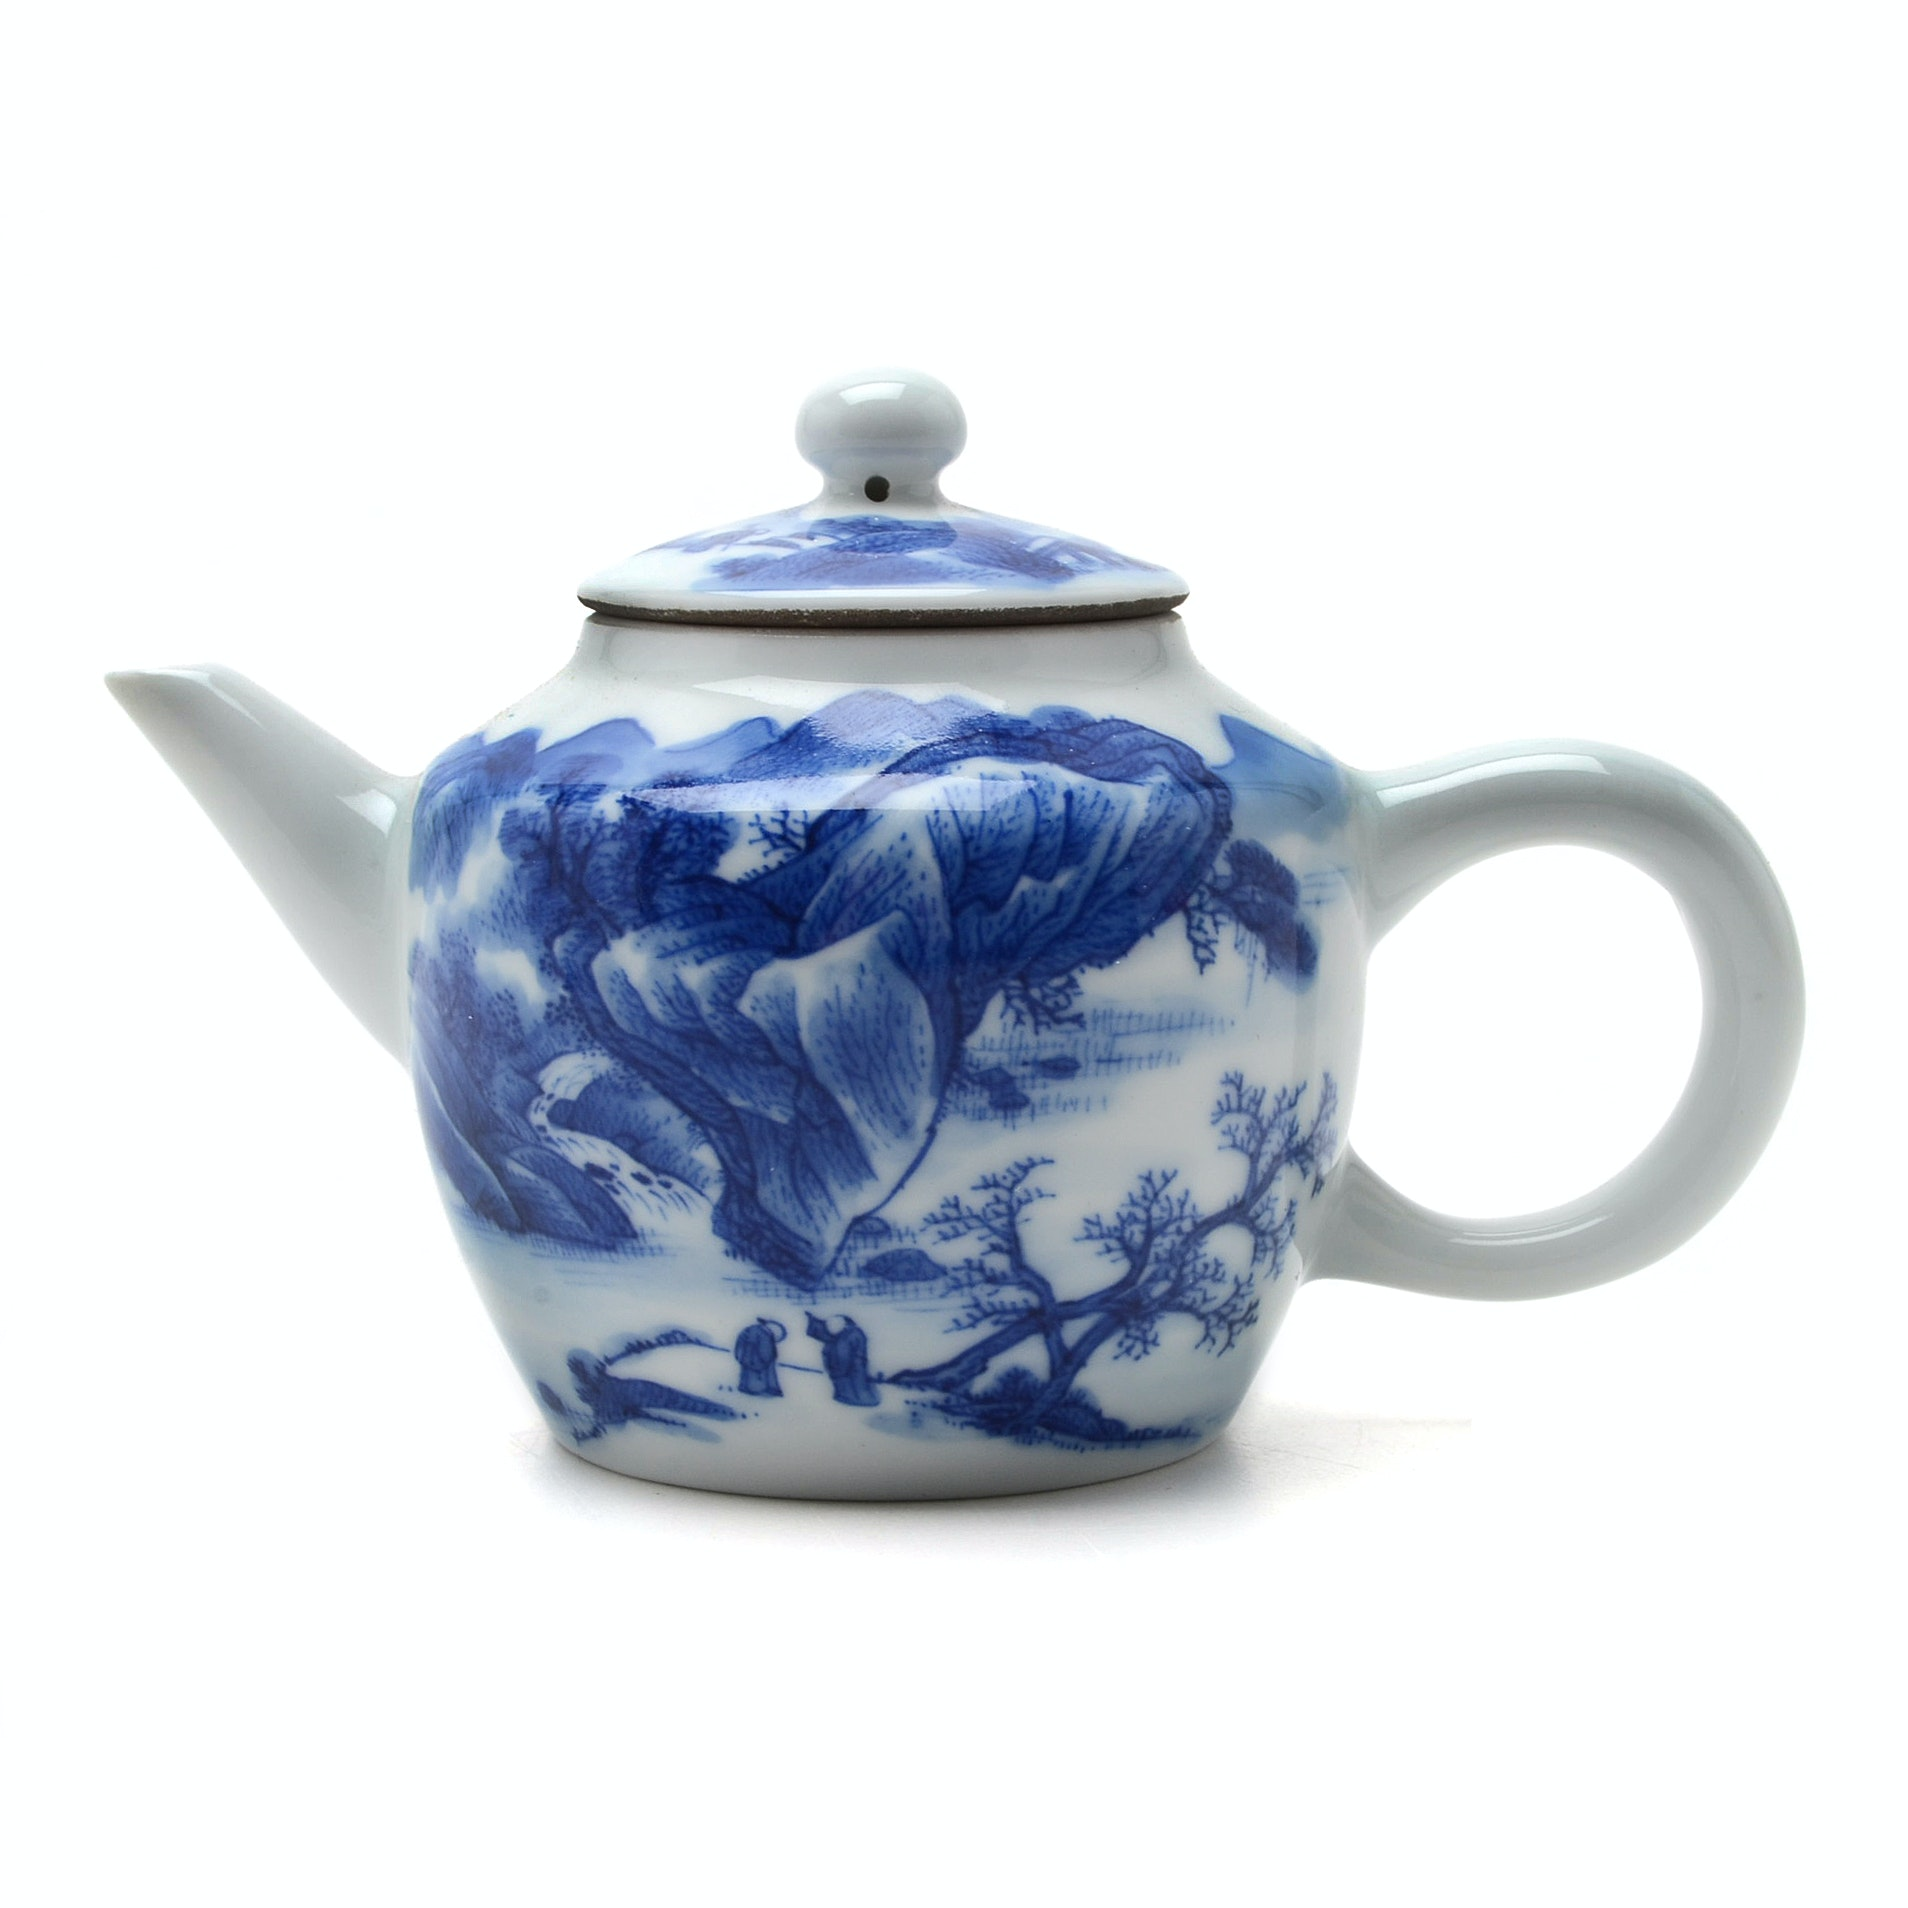 Antique Chinese Miniature Blue and White Porcelain Teapot